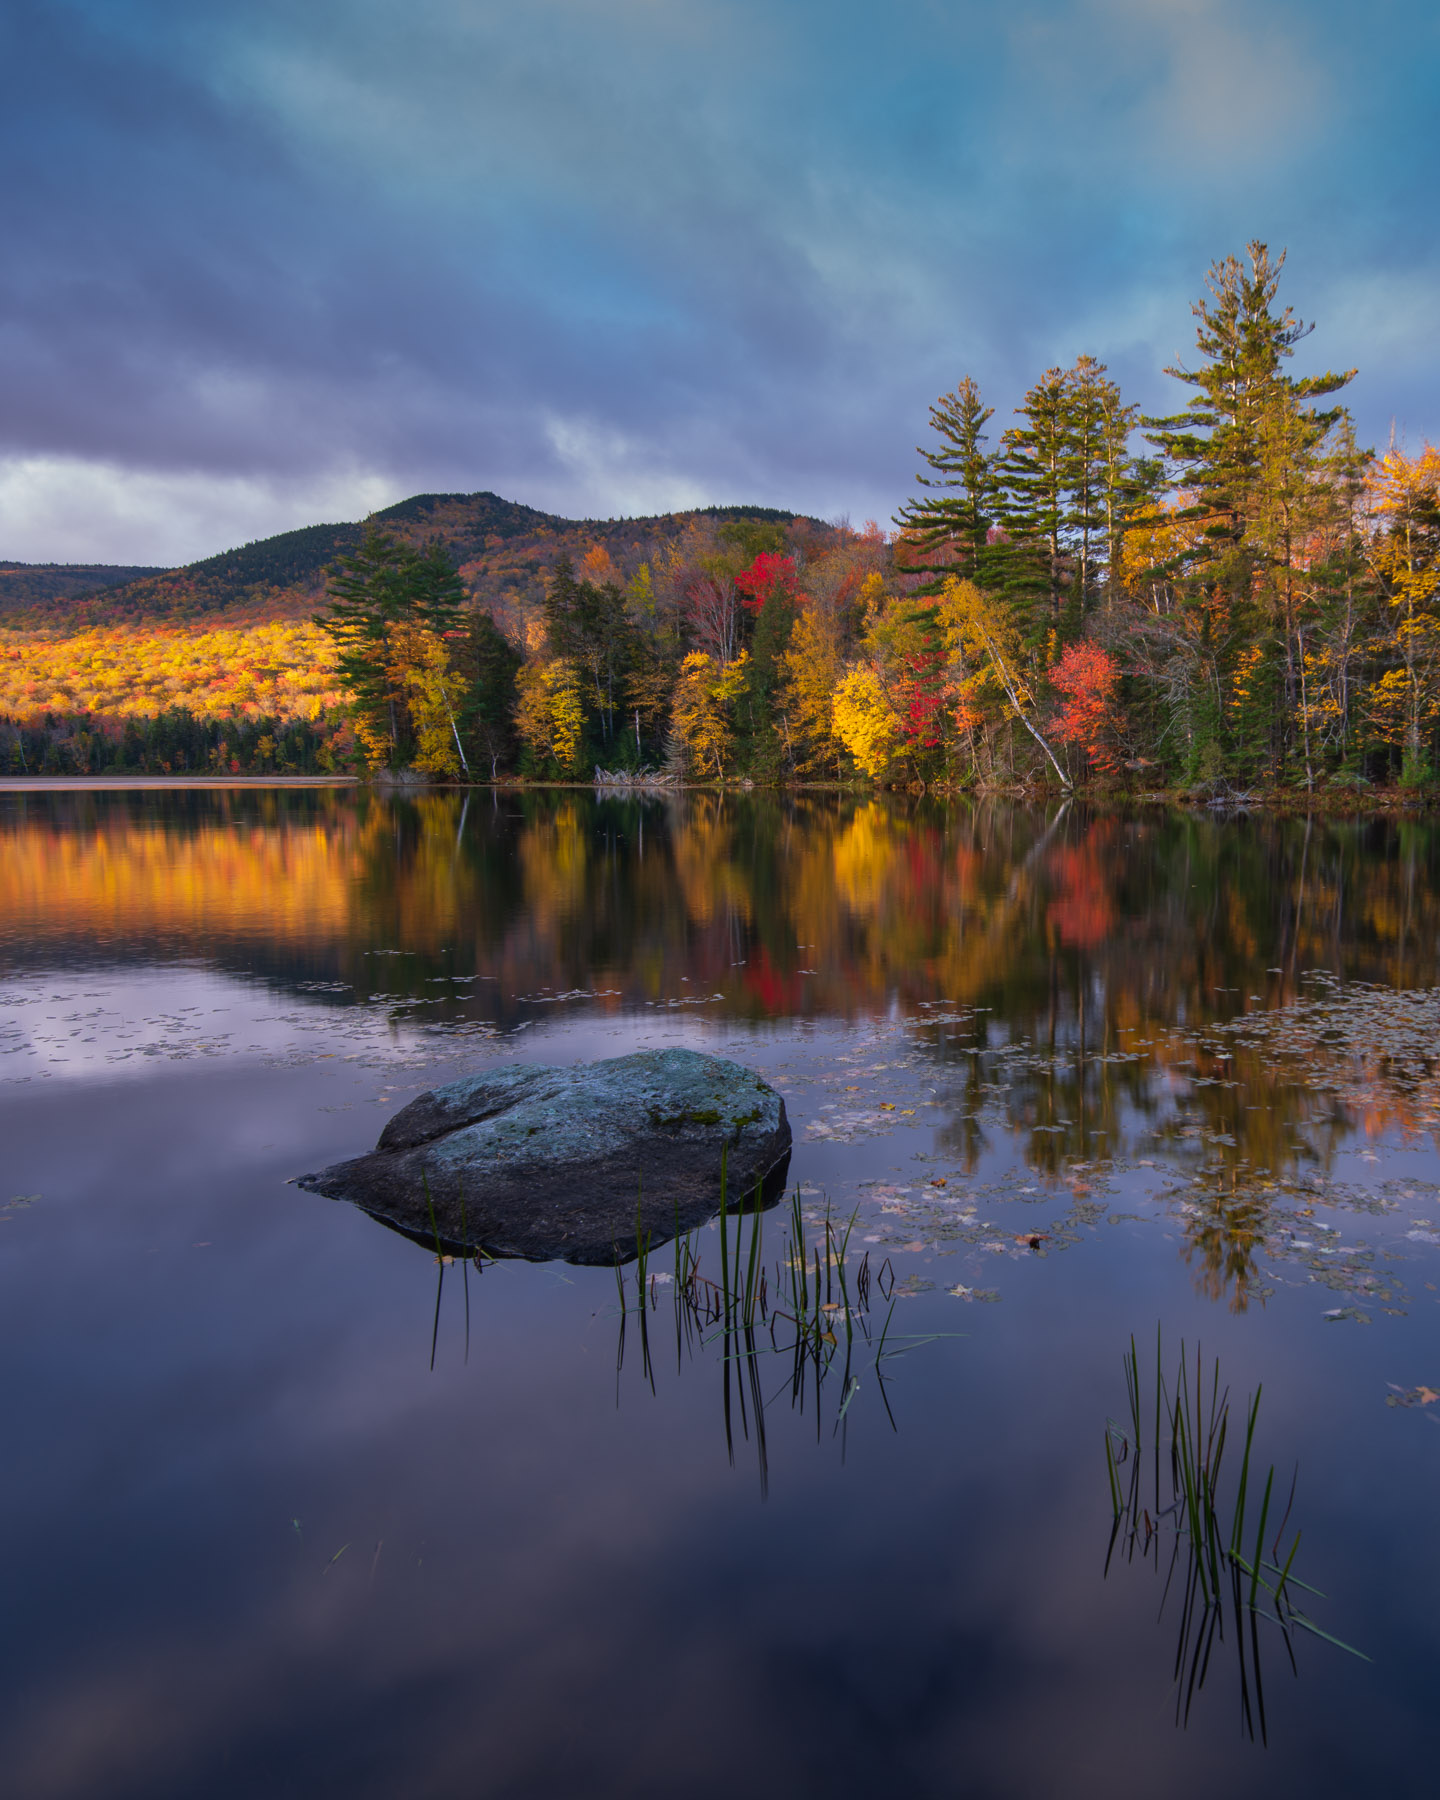 Autumn reflections at sunrise on Lefferts Pond, Green Mountain National Forest, Vermont.